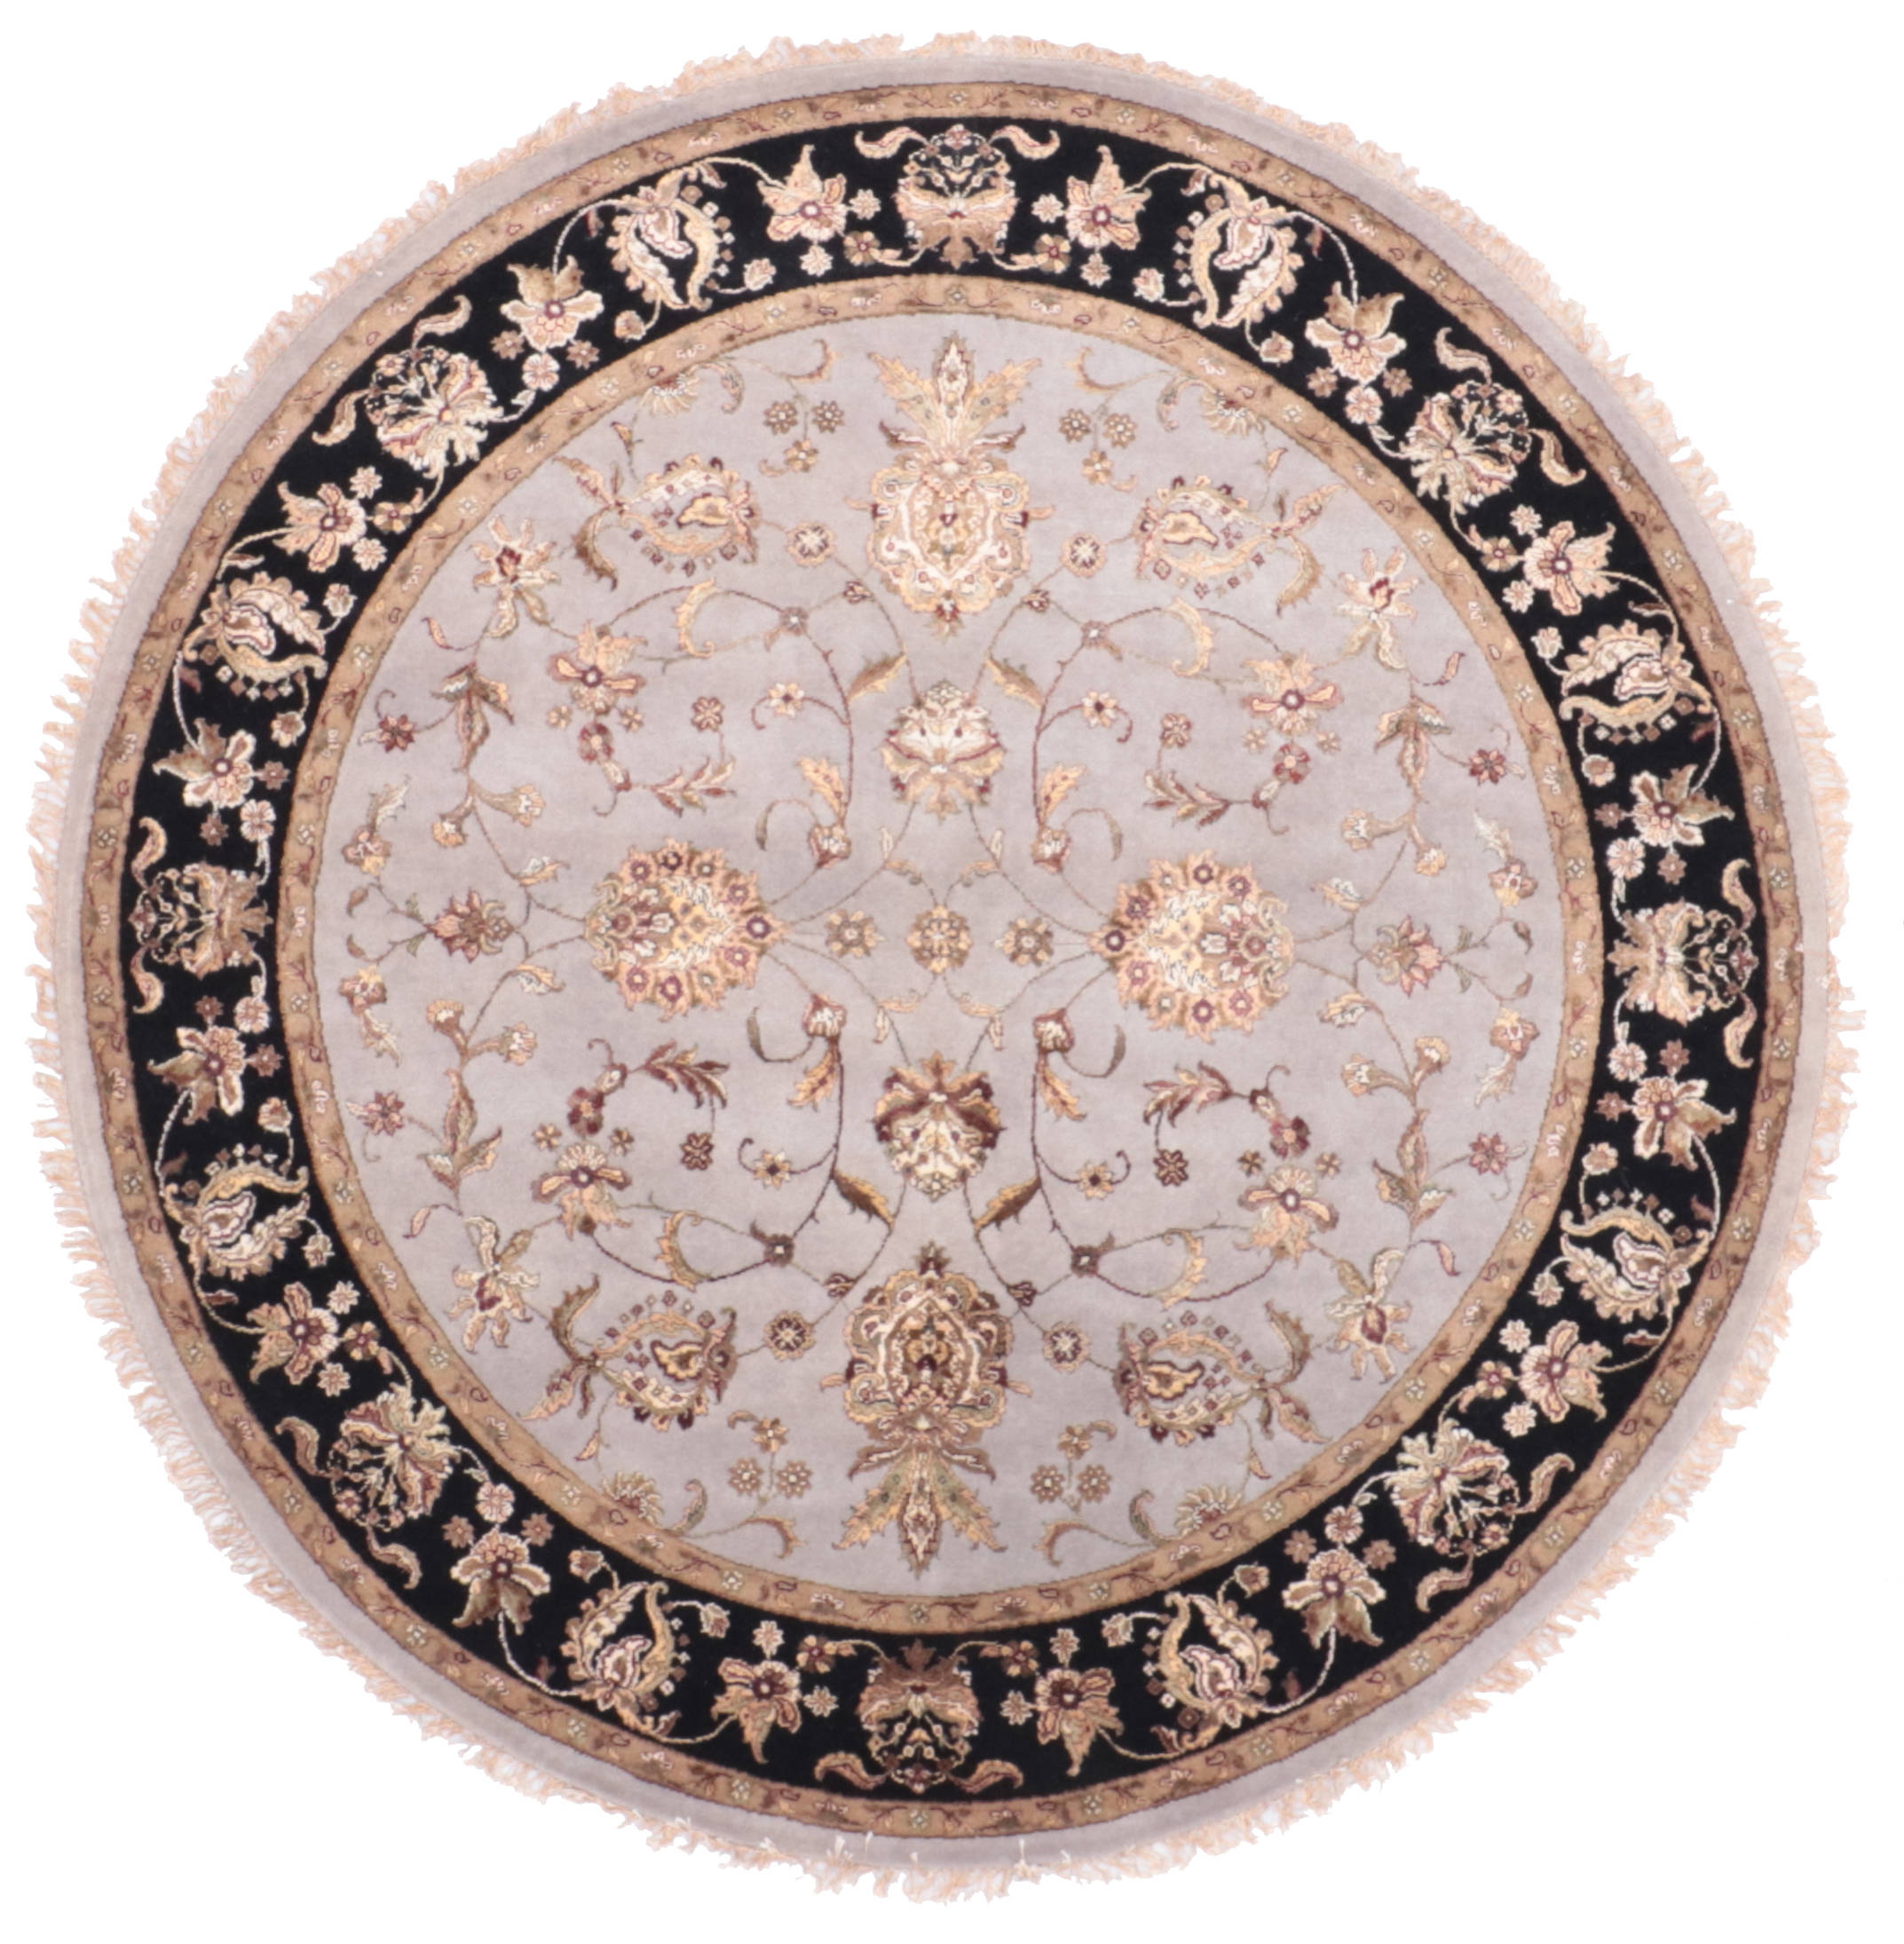 Picture of: Indian Jaipur Blue Round 7 To 8 Ft Wool And Raised Silk Carpet 135657 Sku 135657